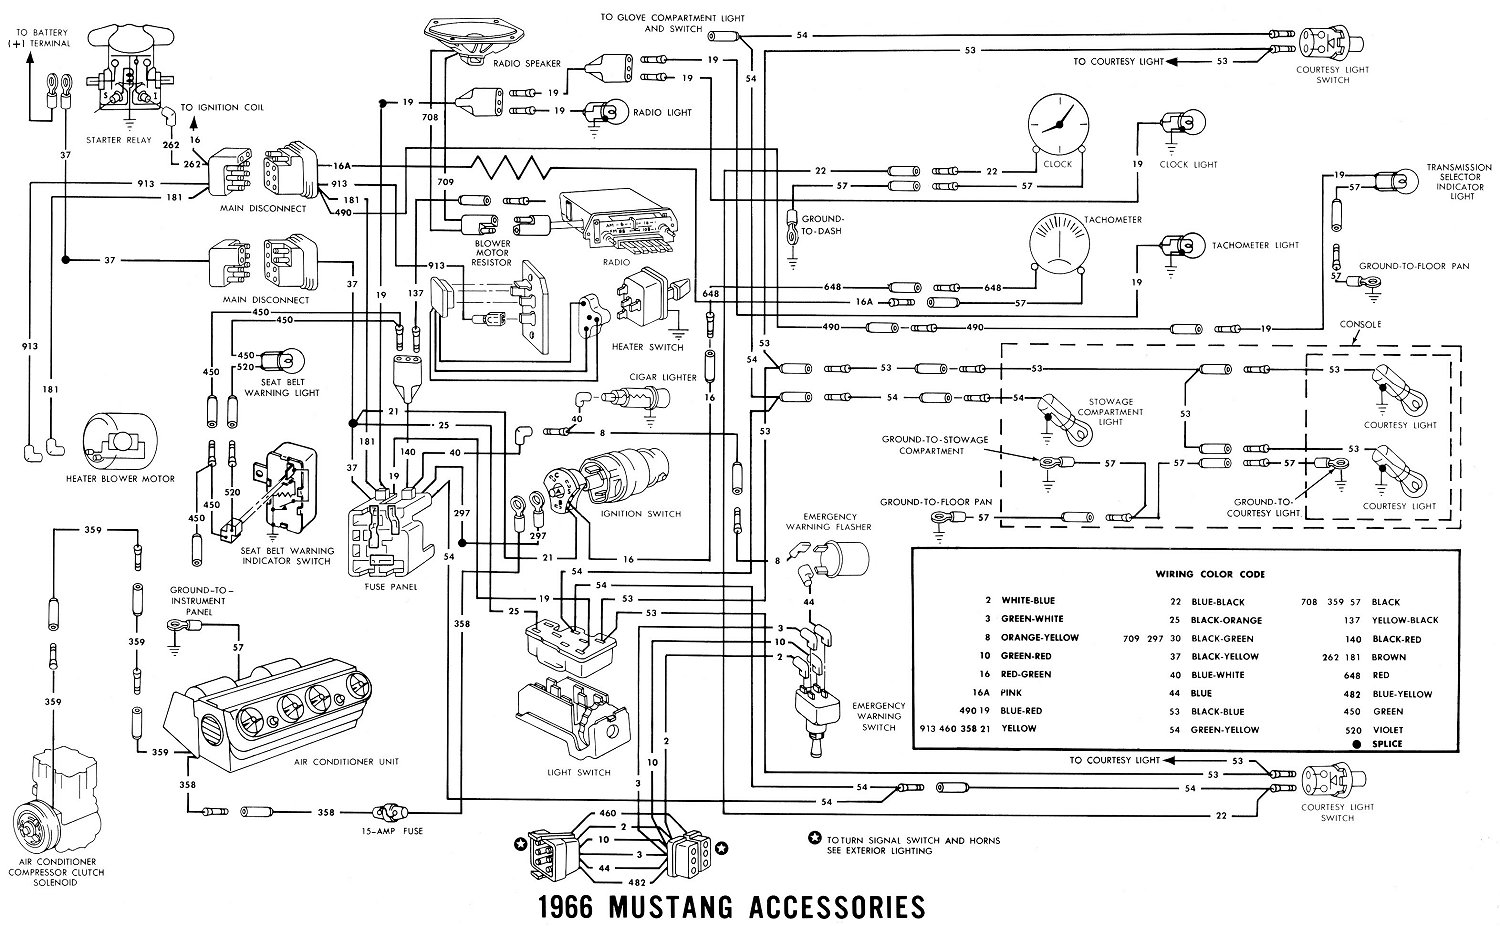 66 mustang wiring diagram diy enthusiasts wiring diagrams u2022 rh  broadwaycomputers us 1966 Mustang Dash Wiring Diagram 1966 Mustang Coil  Wiring